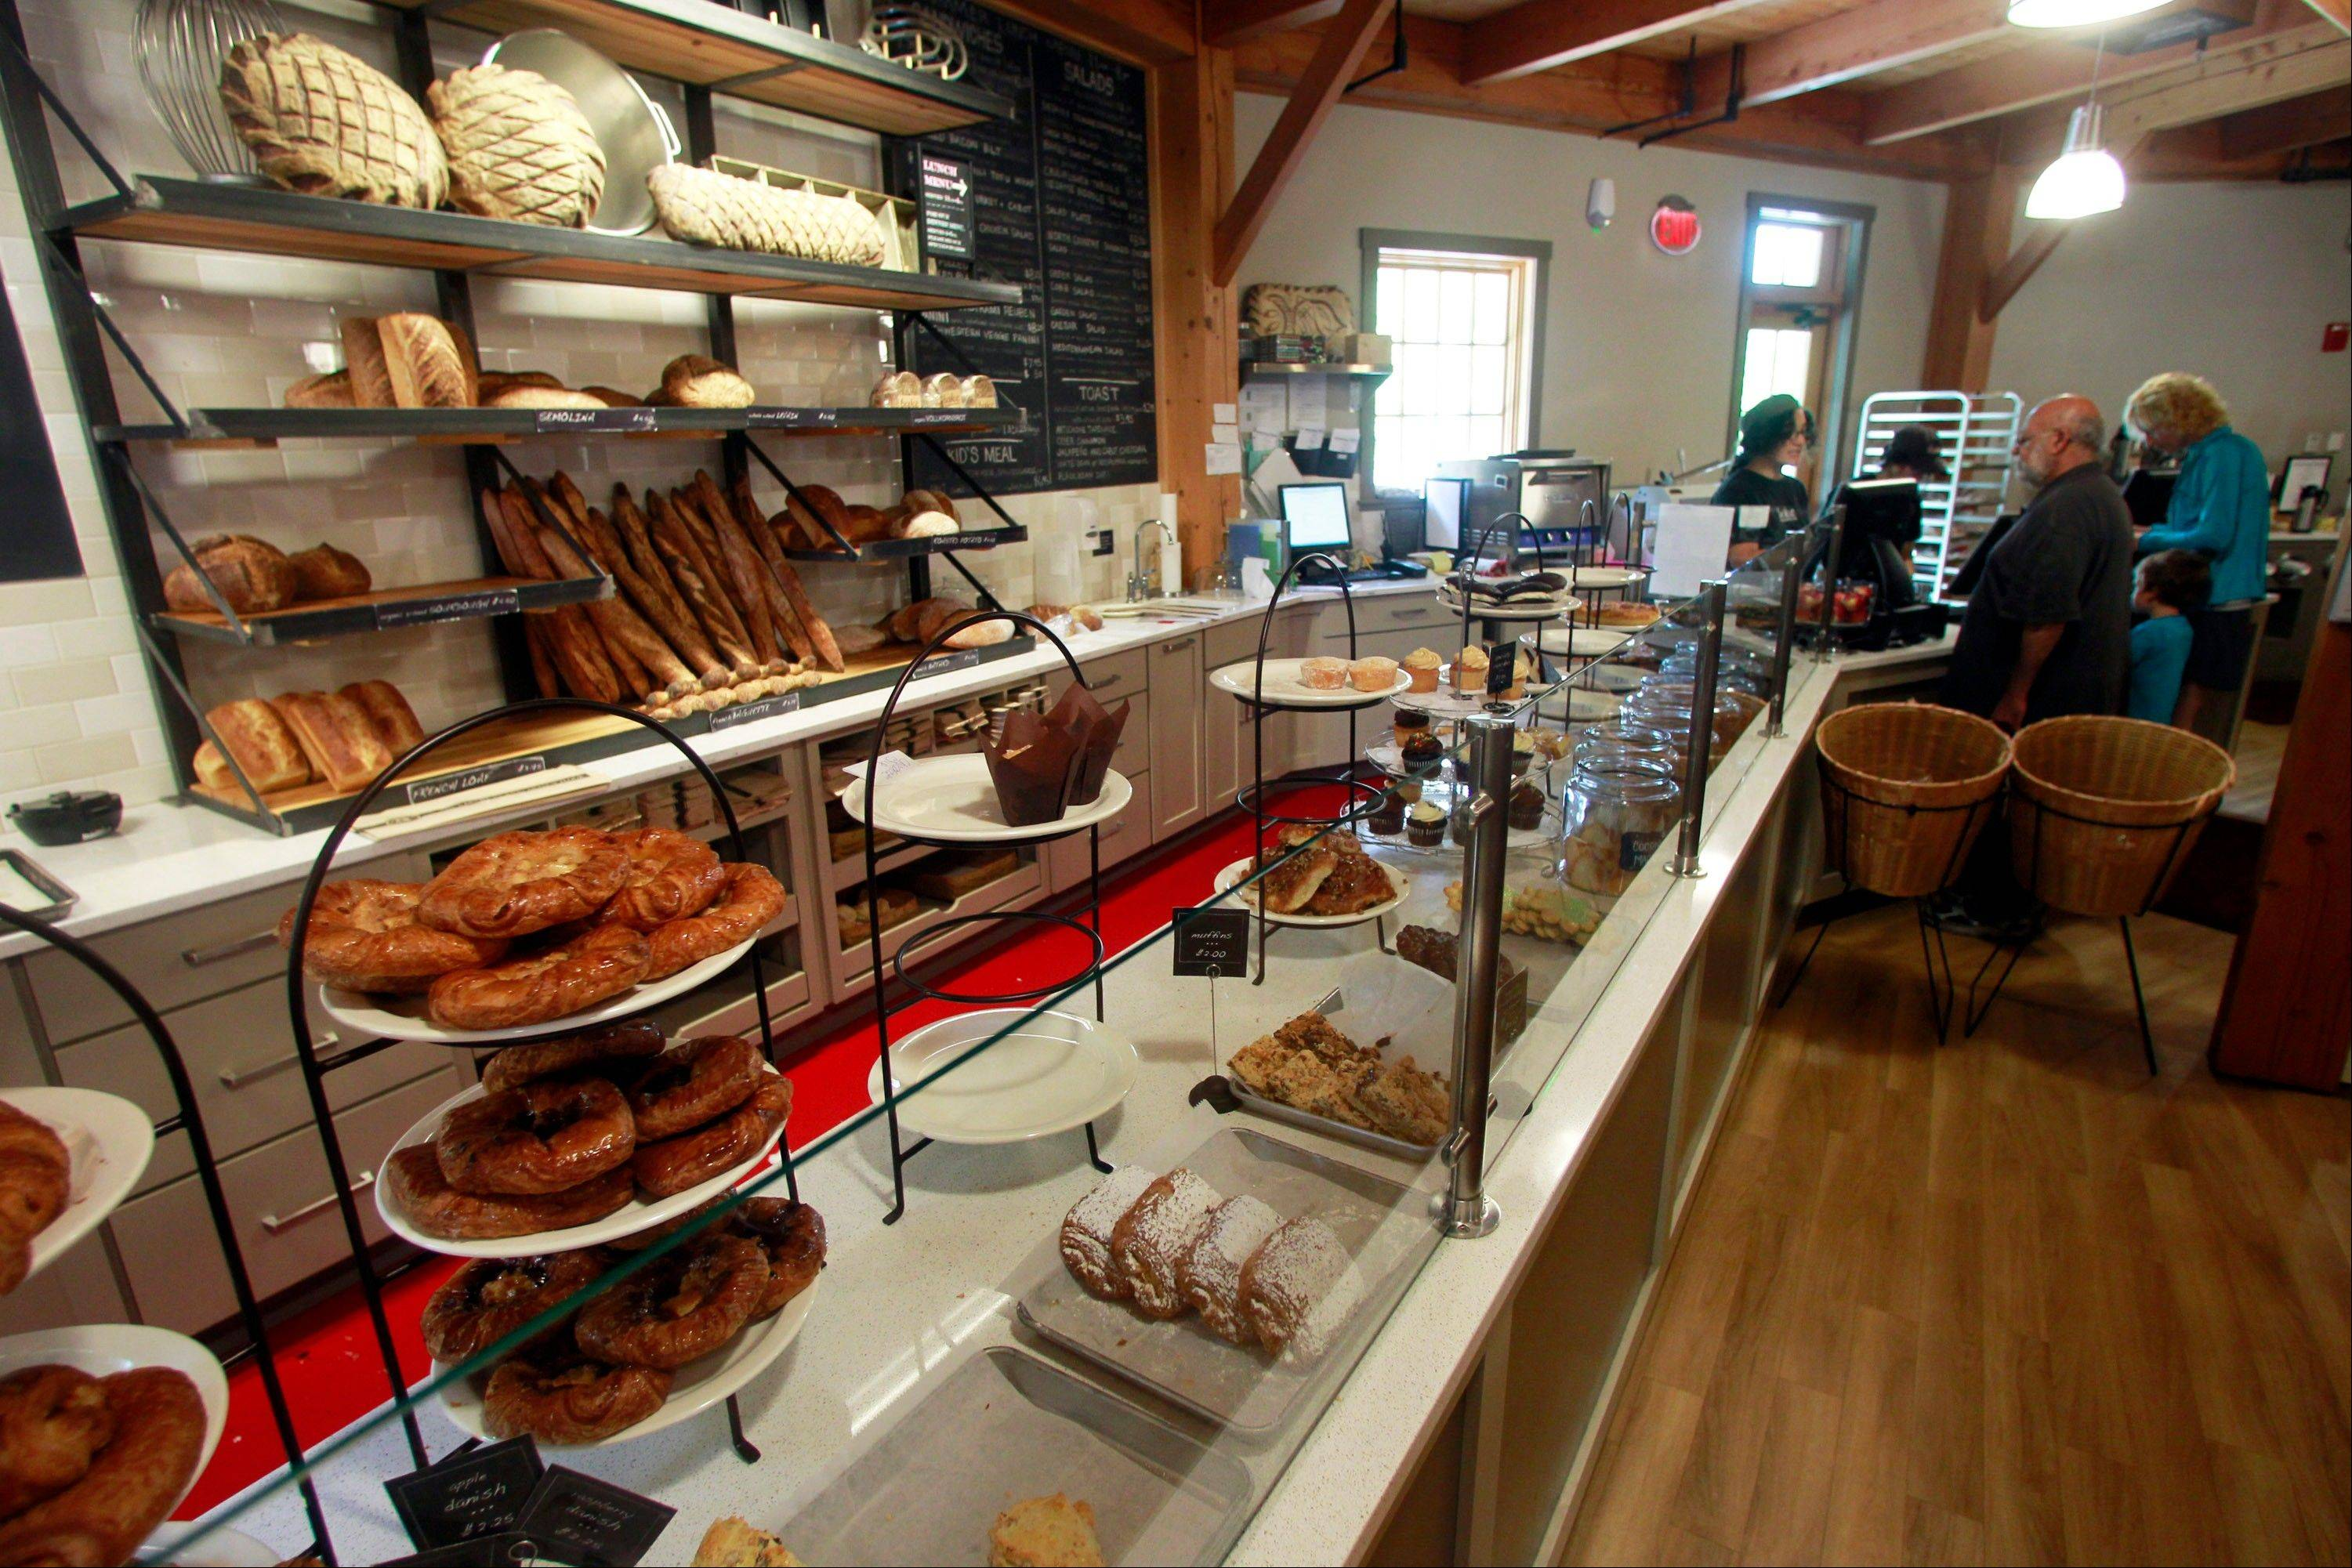 The cafe at King Arthur Flour Co. in Norwich, Vt., serves baked goods made from their flour.